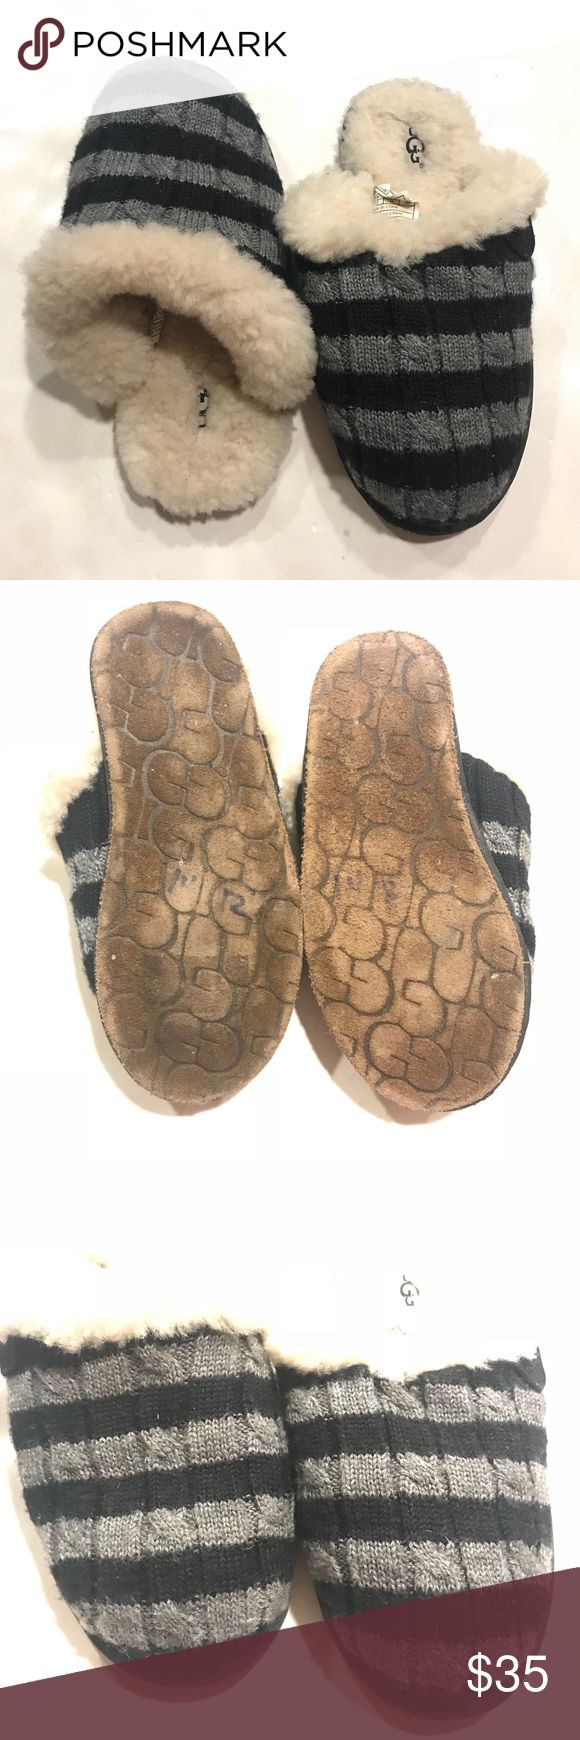 UGG Kids Black Gray Striped Slipper Sheepskin 13 UGG girls size 13 gray and black striped Sheepskin slipper flats. Used in good condition ! UGG Shoes Slippers